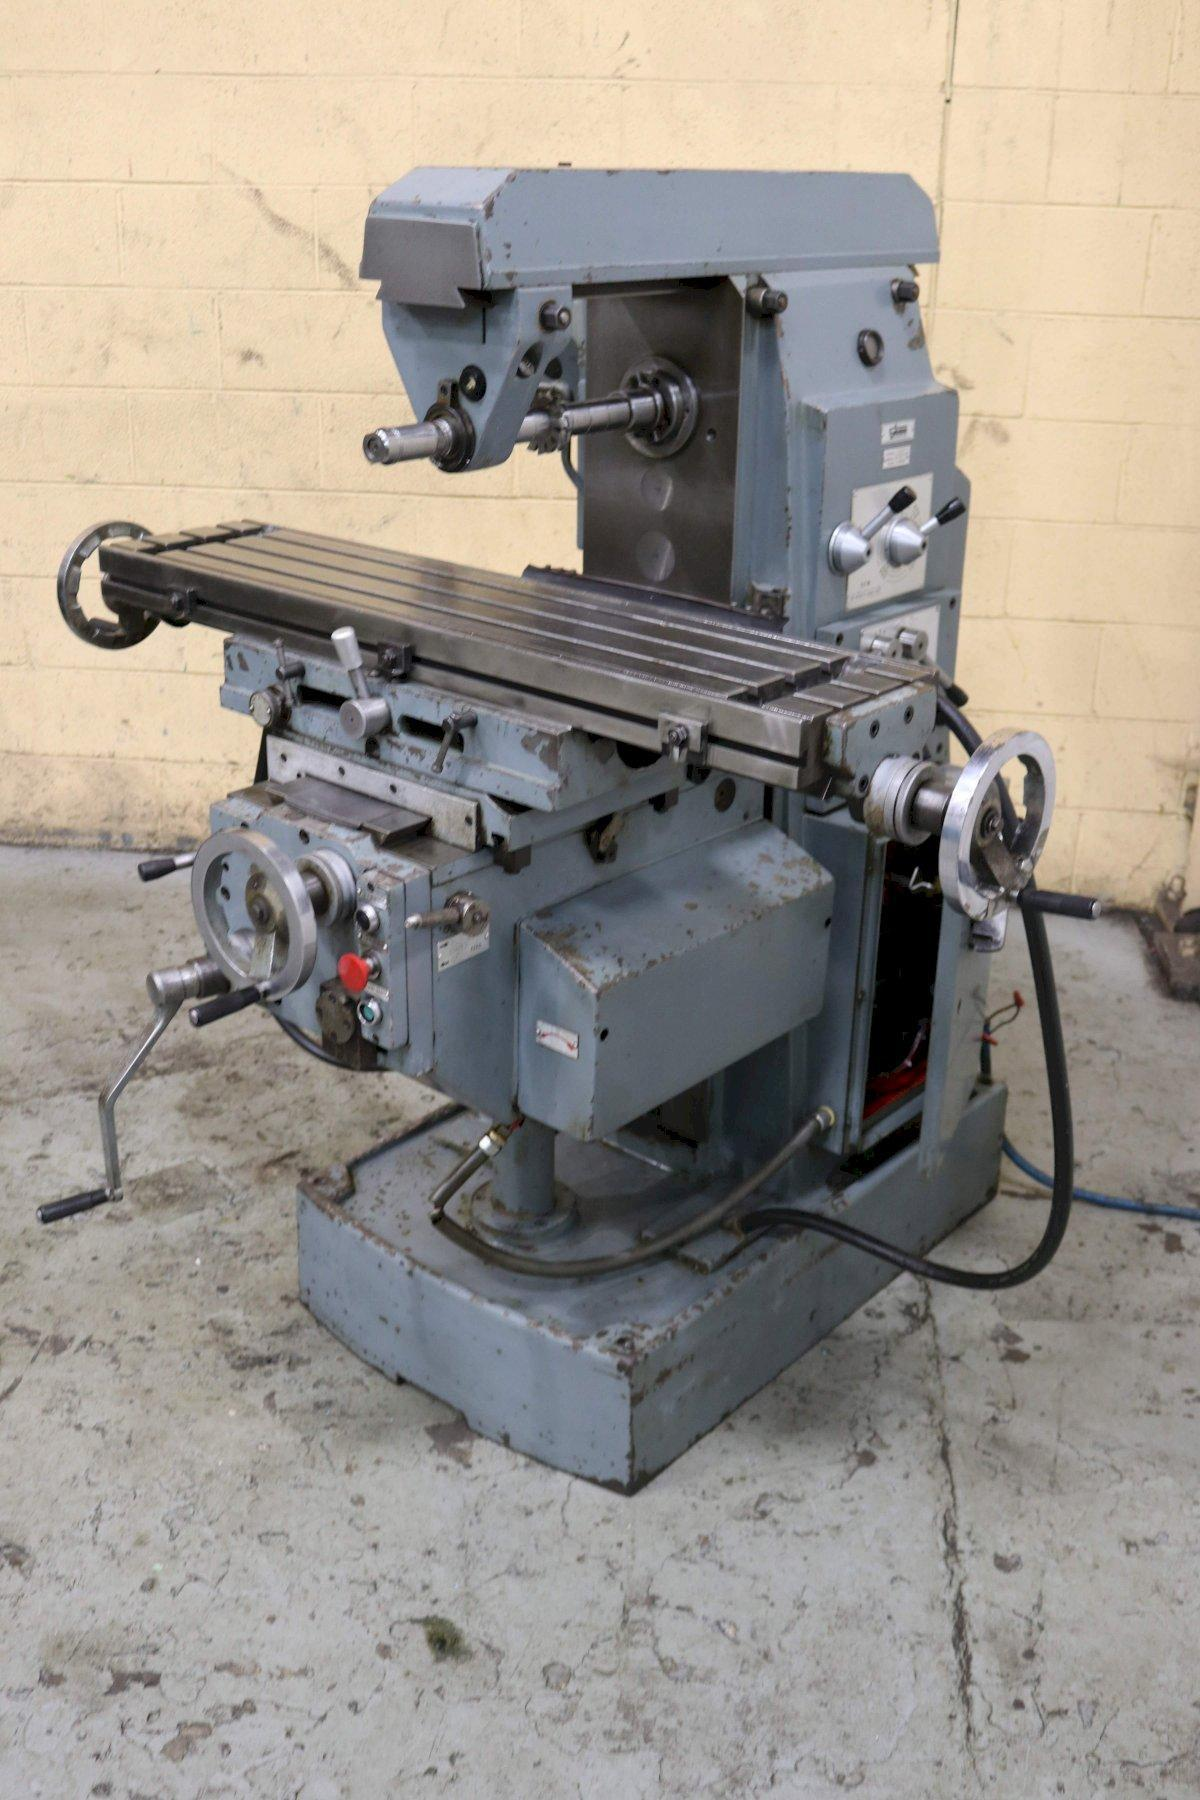 FEXAC HORIZONTAL MILL WITH VERTICAL HEAD : STOCK #72578